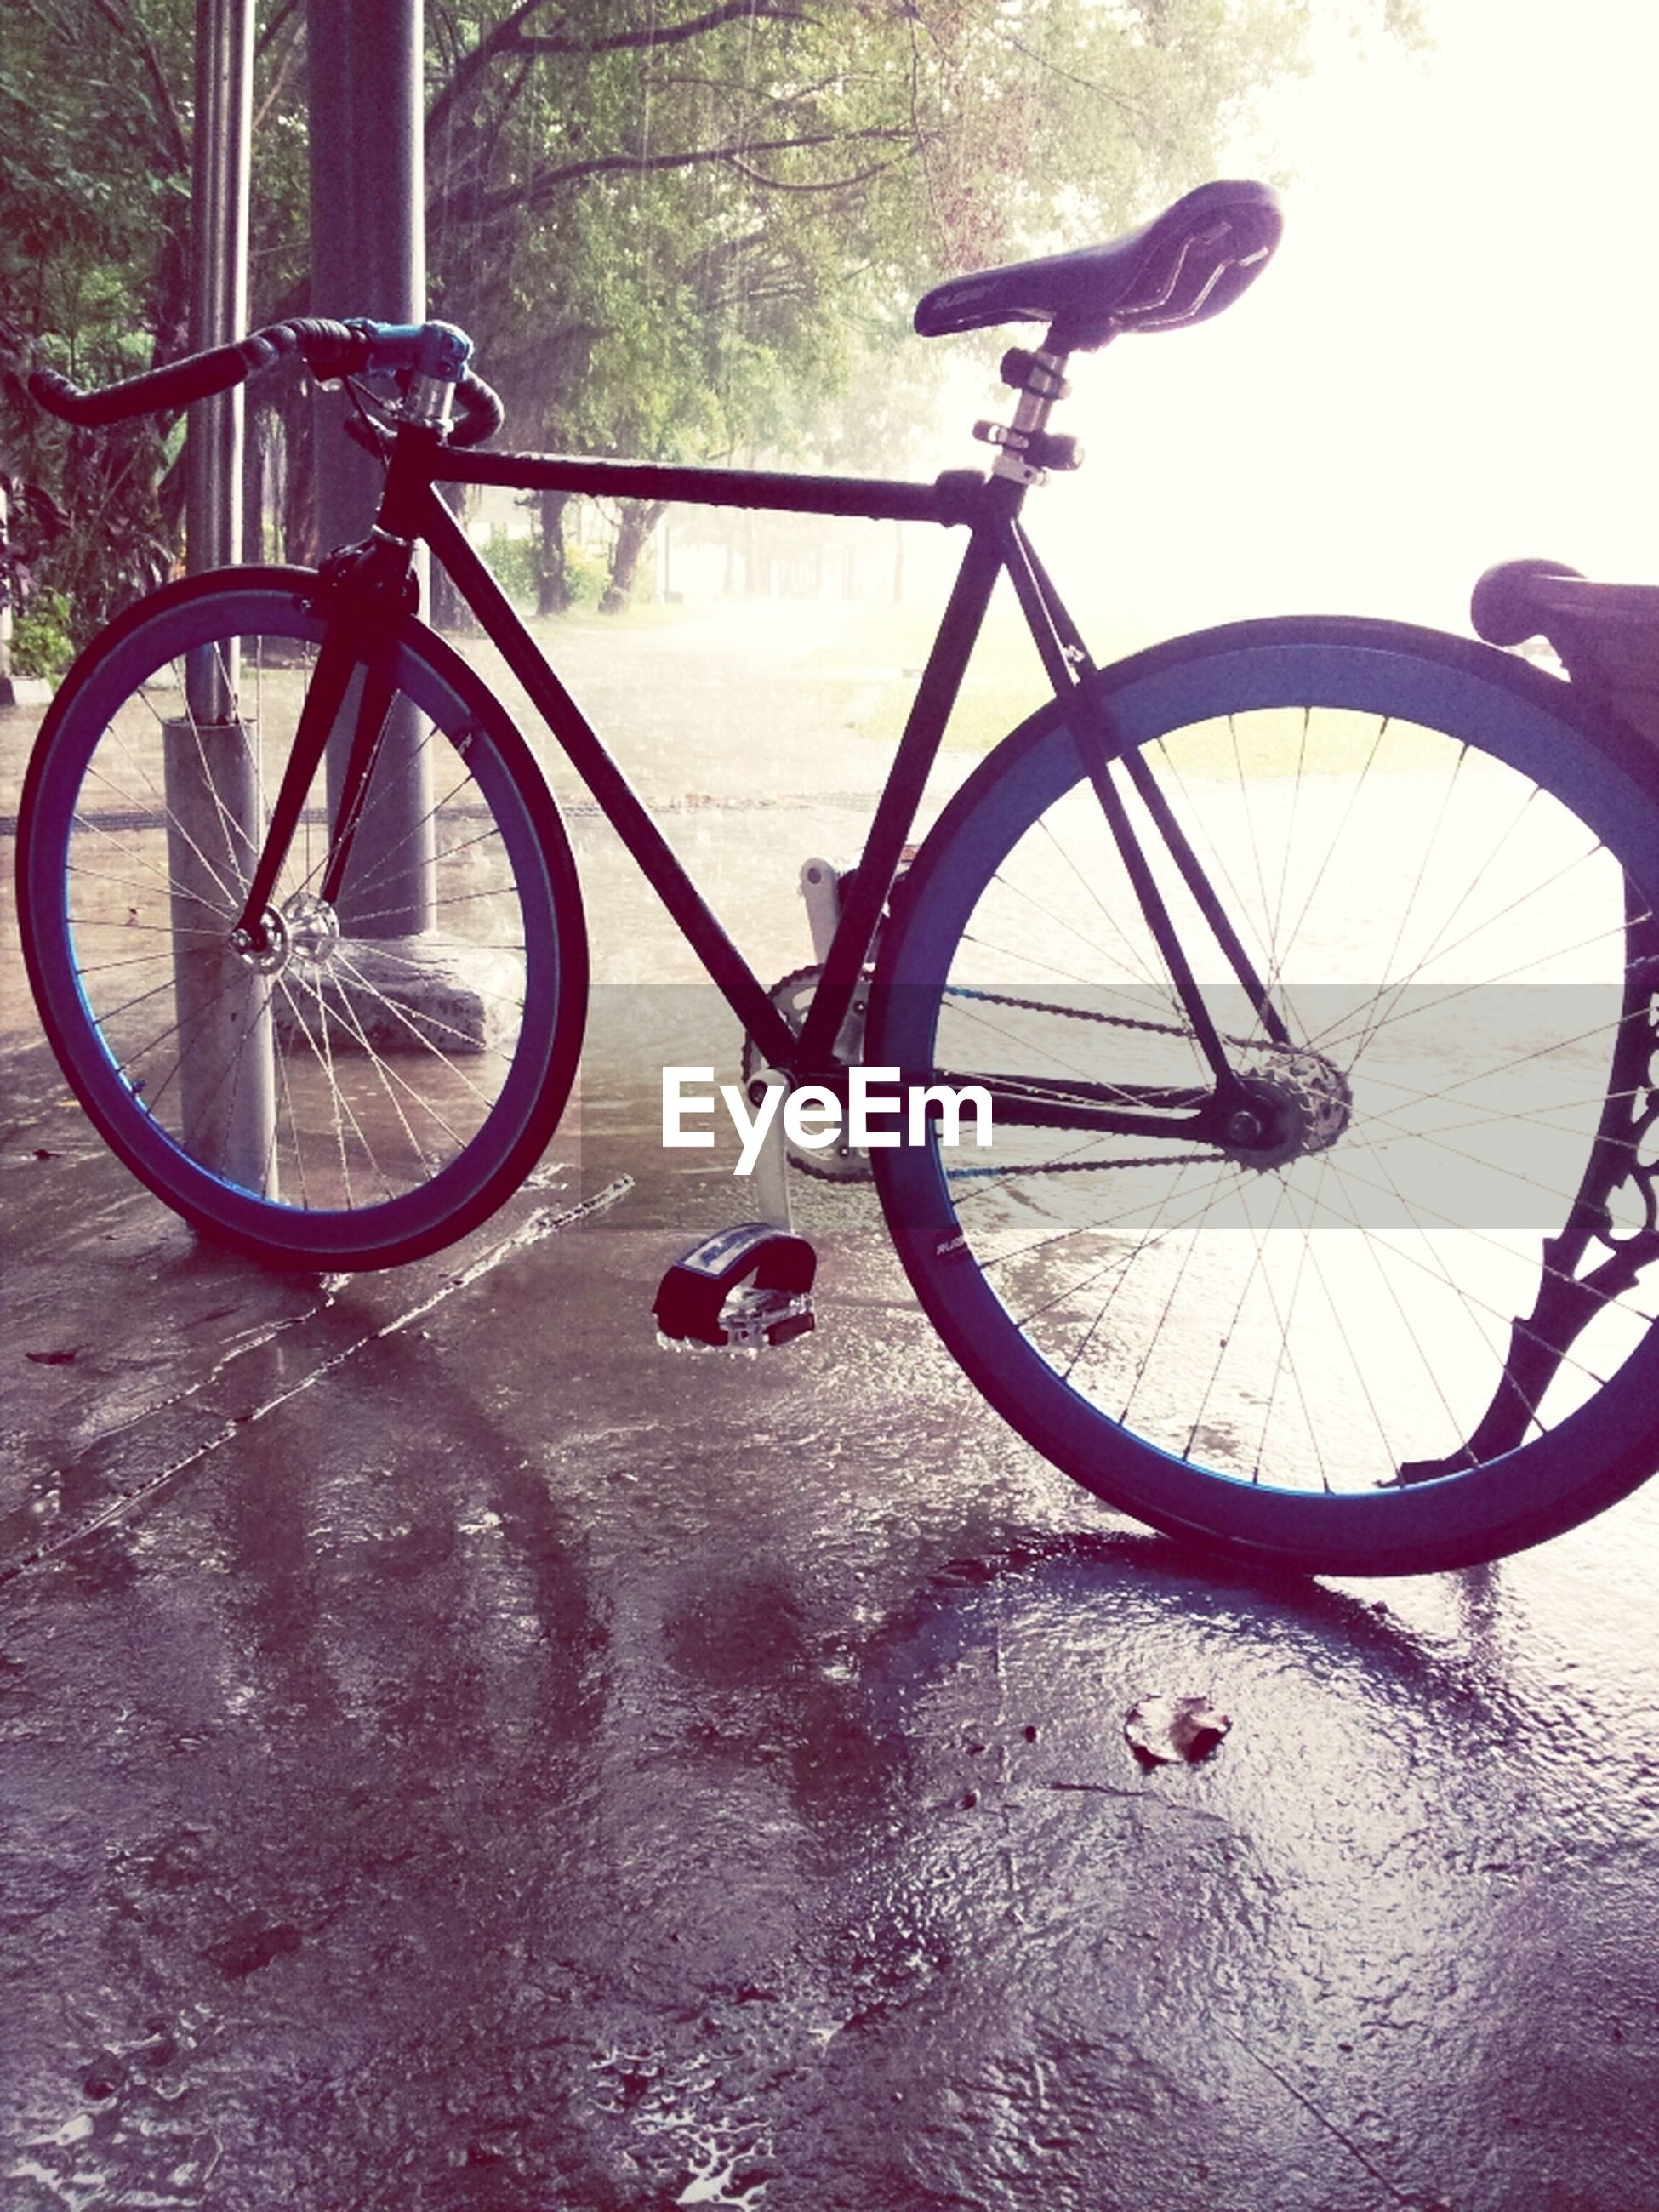 bicycle, transportation, mode of transport, land vehicle, wheel, stationary, parking, no people, parked, day, outdoors, shadow, metal, sunlight, tree, nature, close-up, water, tire, tranquility